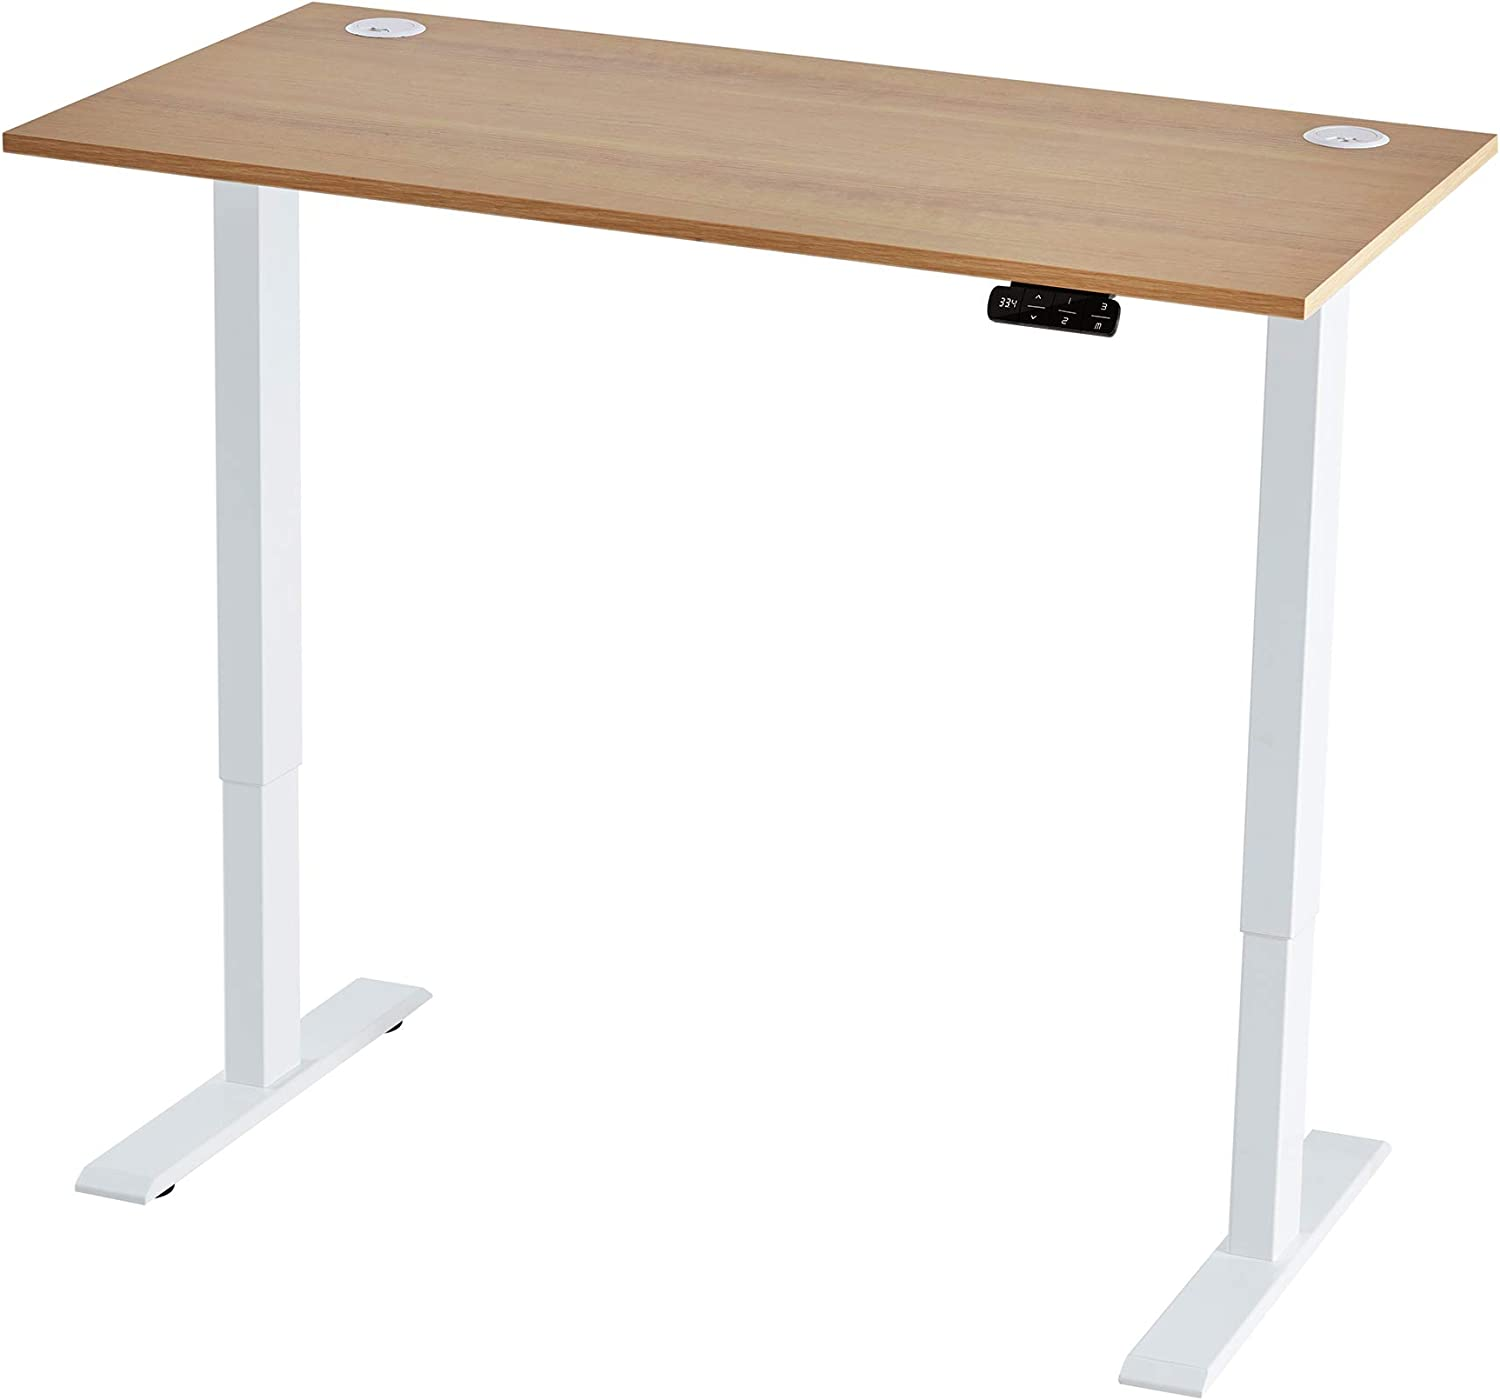 Vicllax Electric Kansas City Mall Standing Desk Height x Table Adjustable 24 Rapid rise 48